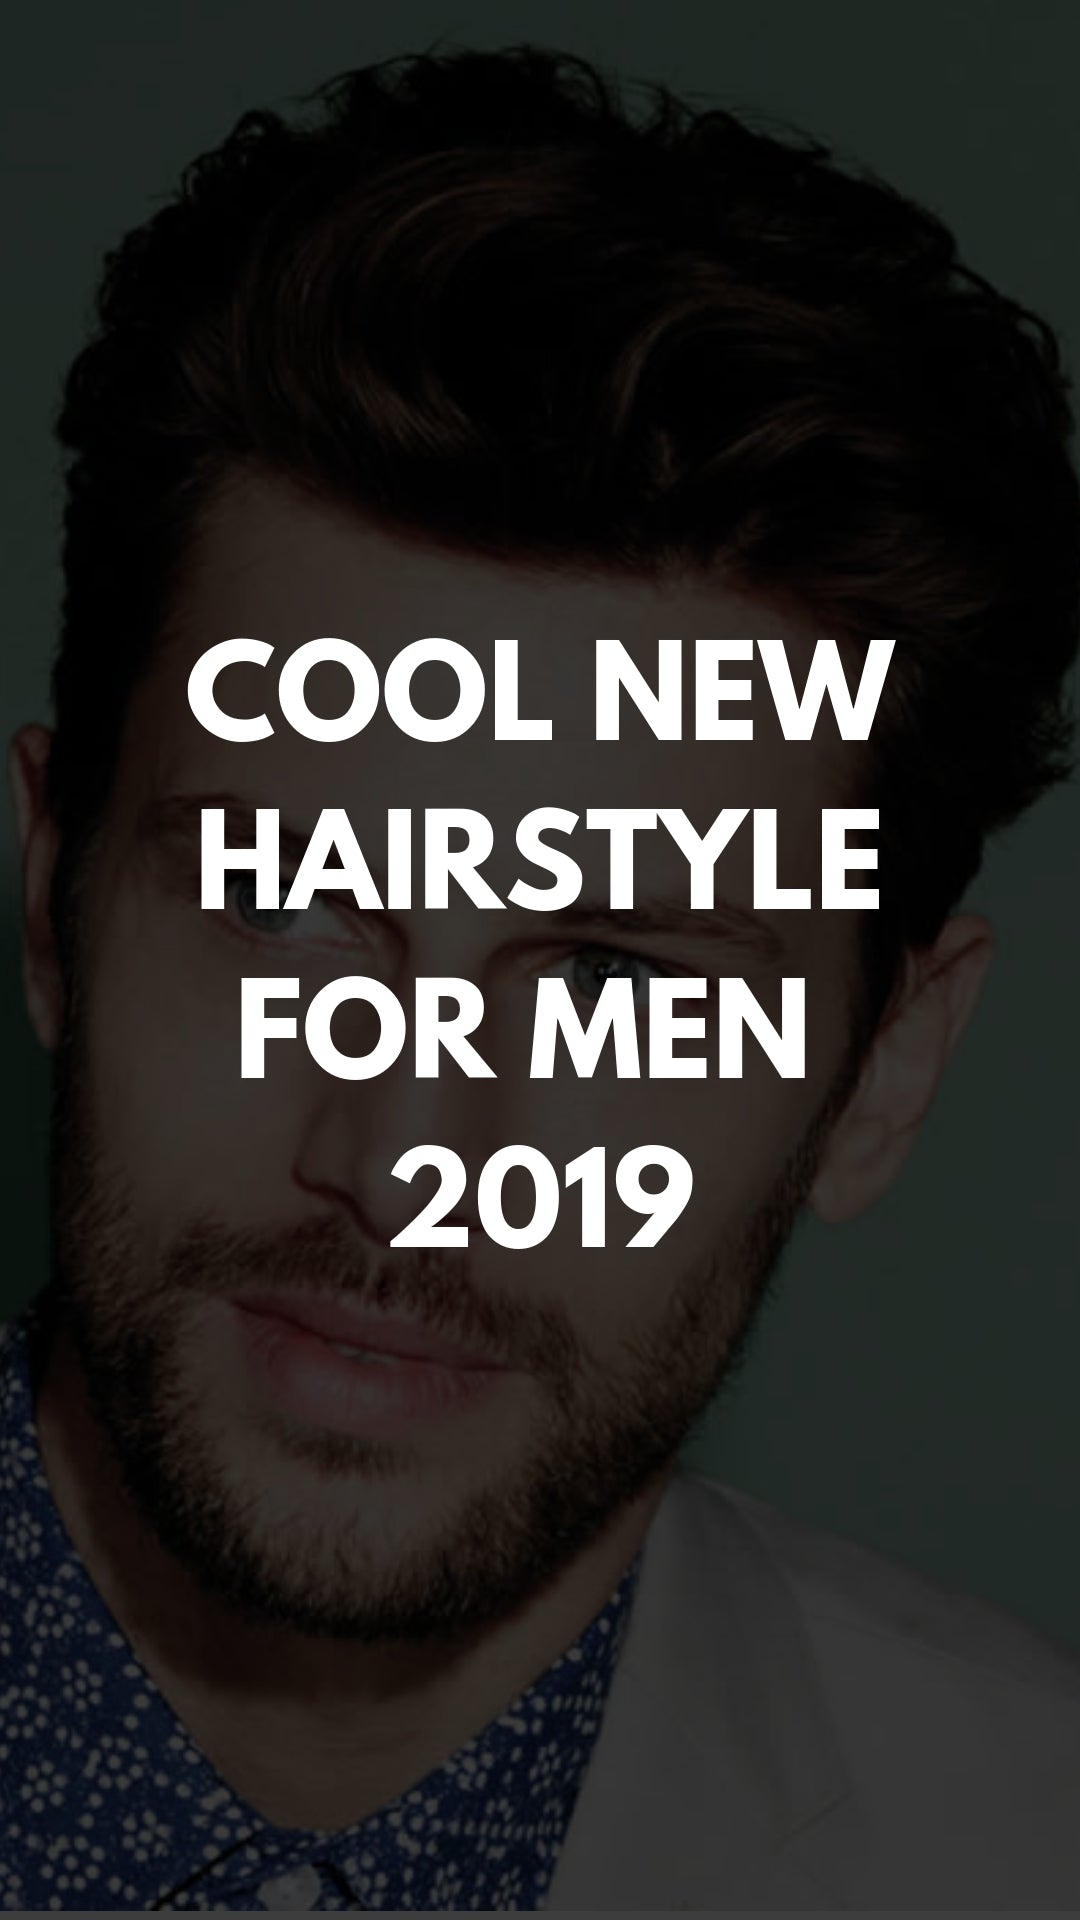 Top New Men's Hairstyles For 2019 (eBook) #hairstyles #haircuts